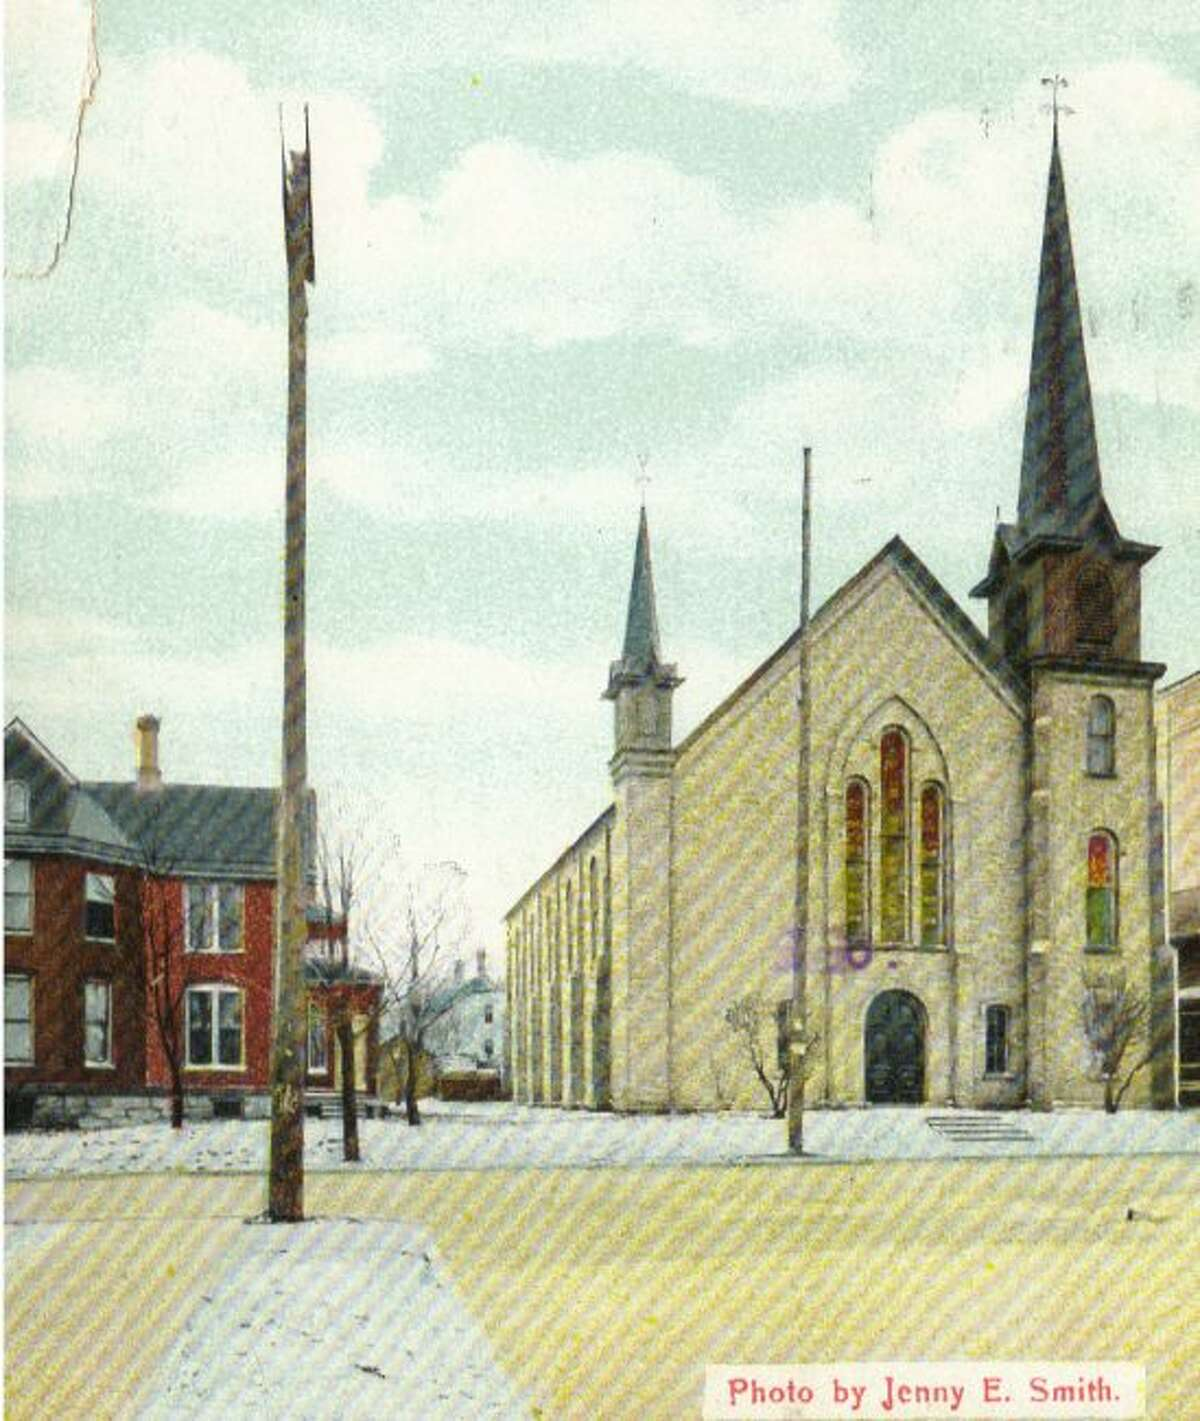 This is what the old Methodist Church that was located on First Street in Manistee used to look like in the early 1930s.